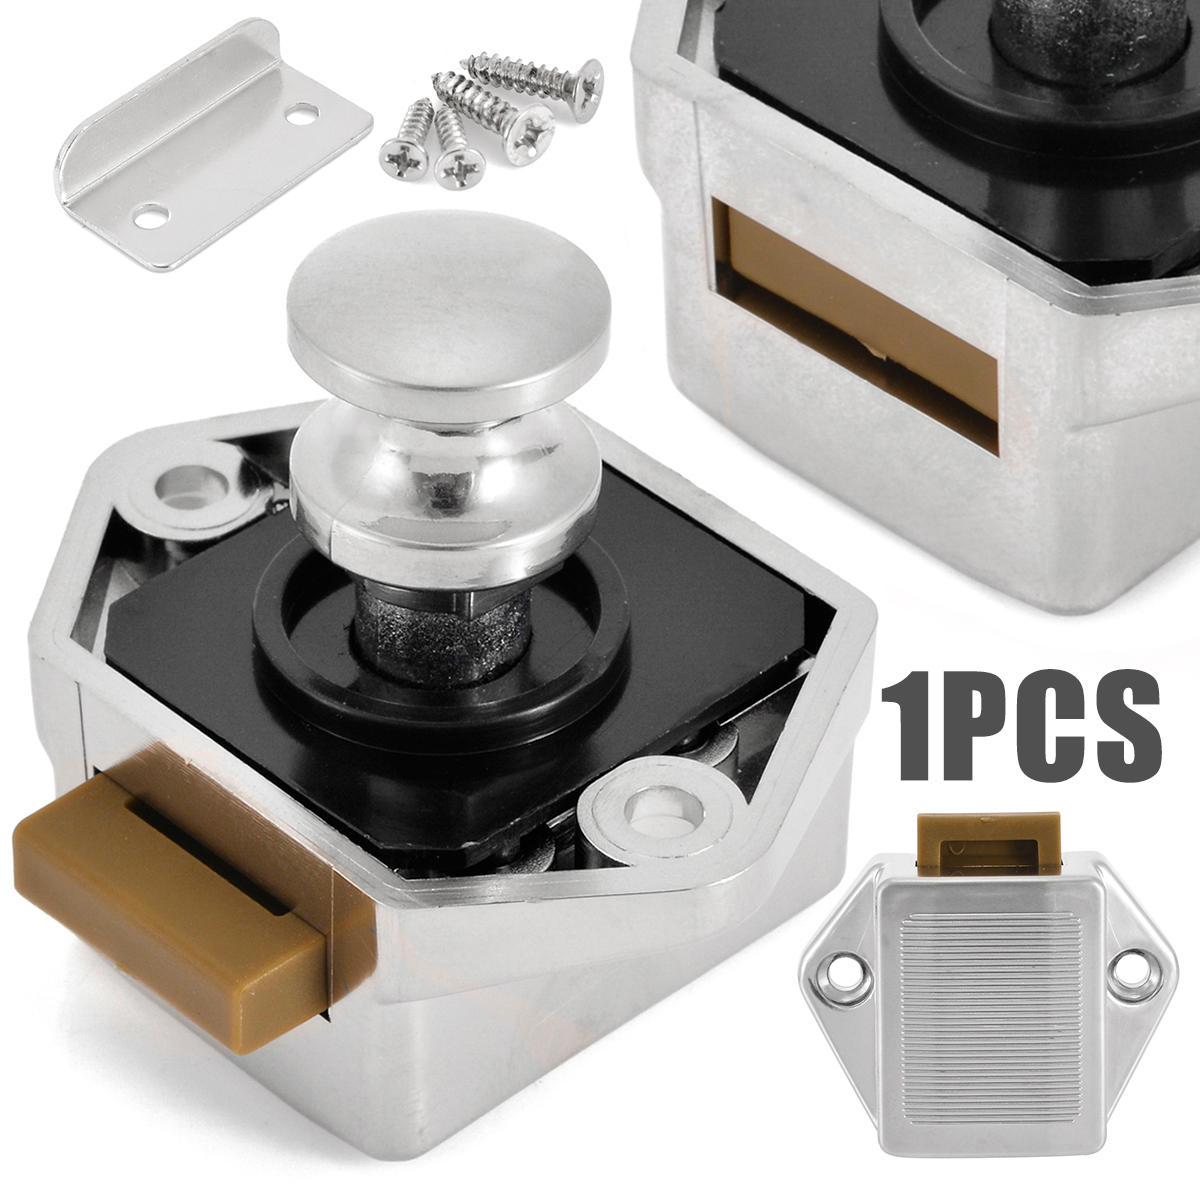 1pc Mini Push Button Cabinet Latch Abs Plastic Catch Old Style Fuse Box Lock Pop Up Furniture Knobs